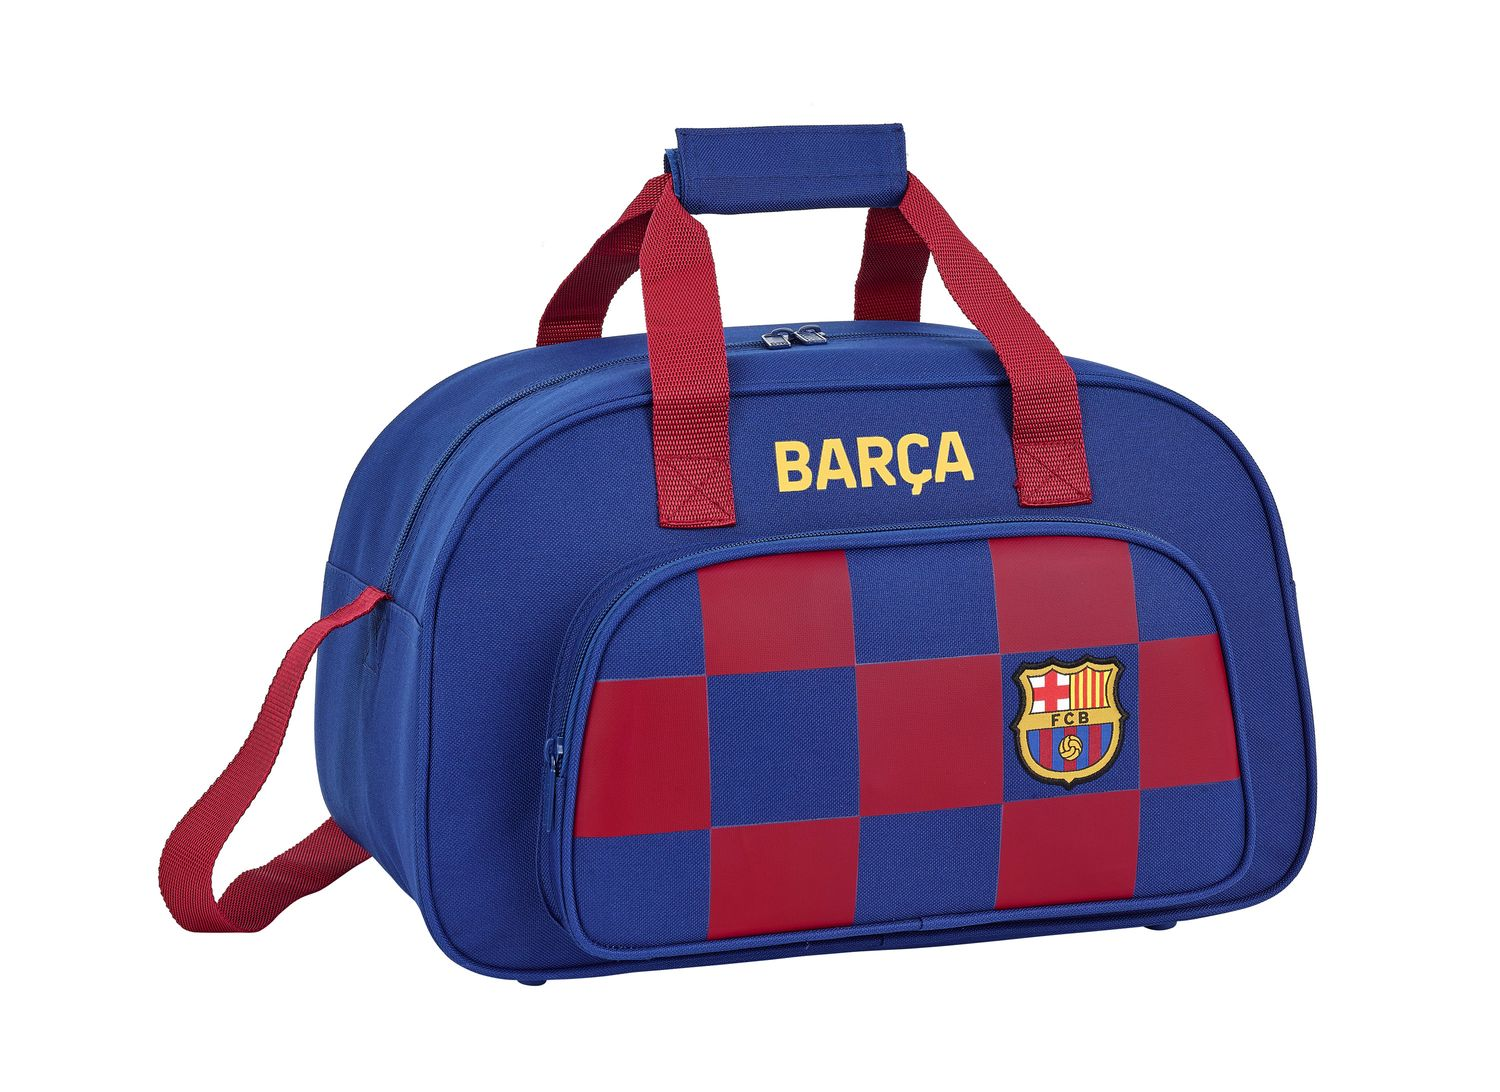 F.C. BARCELONA 1st KIT 2020 Sports Holdall Bag 40cm – image 1